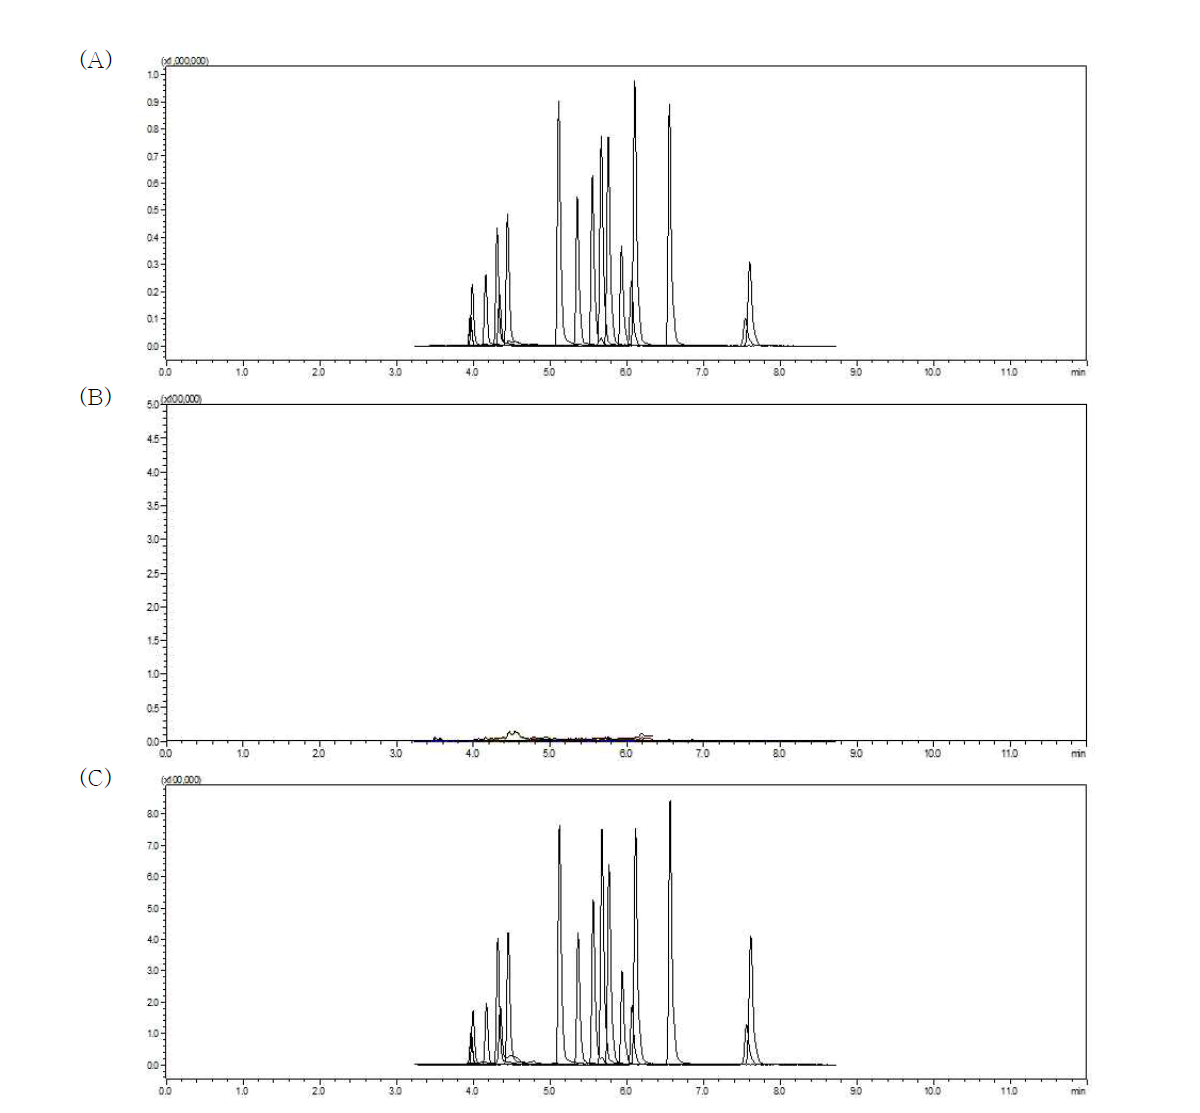 Chromatogram of dyes in milk: Standard solution (A) (0.001 mg/L), matrix blank (B), dyes spiked sample (C) (0.005 mg/kg)